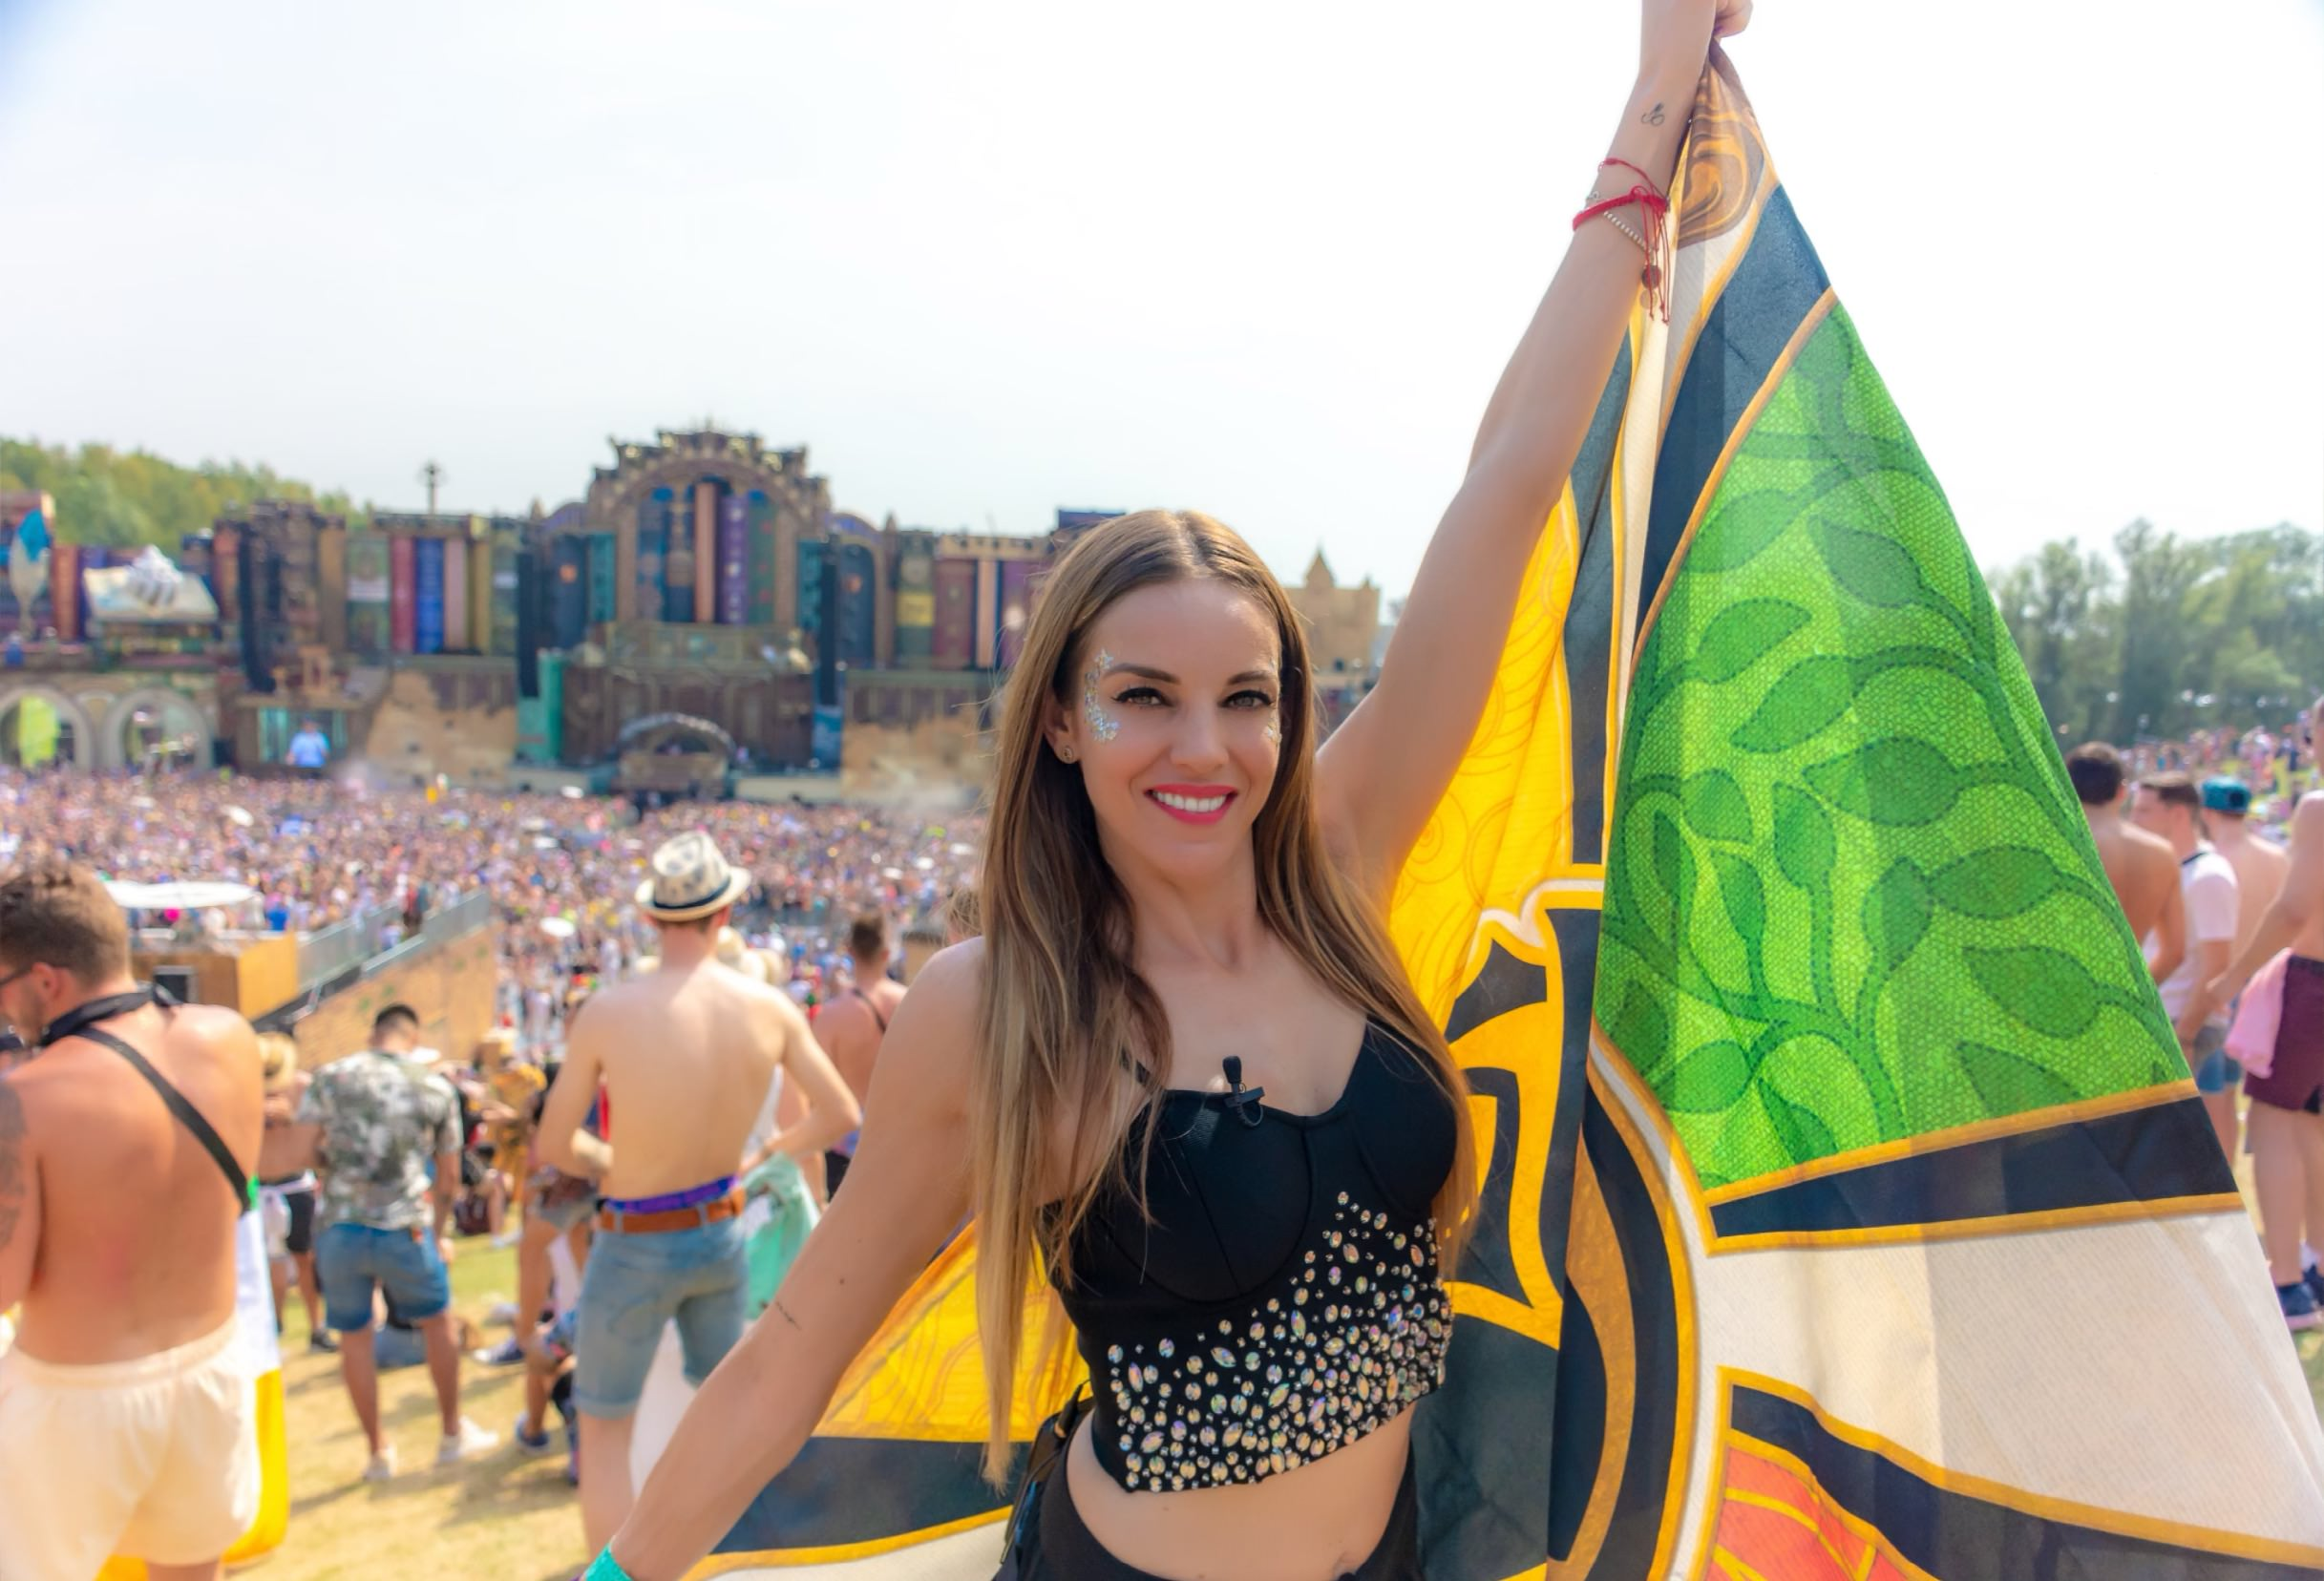 Majo Montemayor con bandera de Tomorrowland